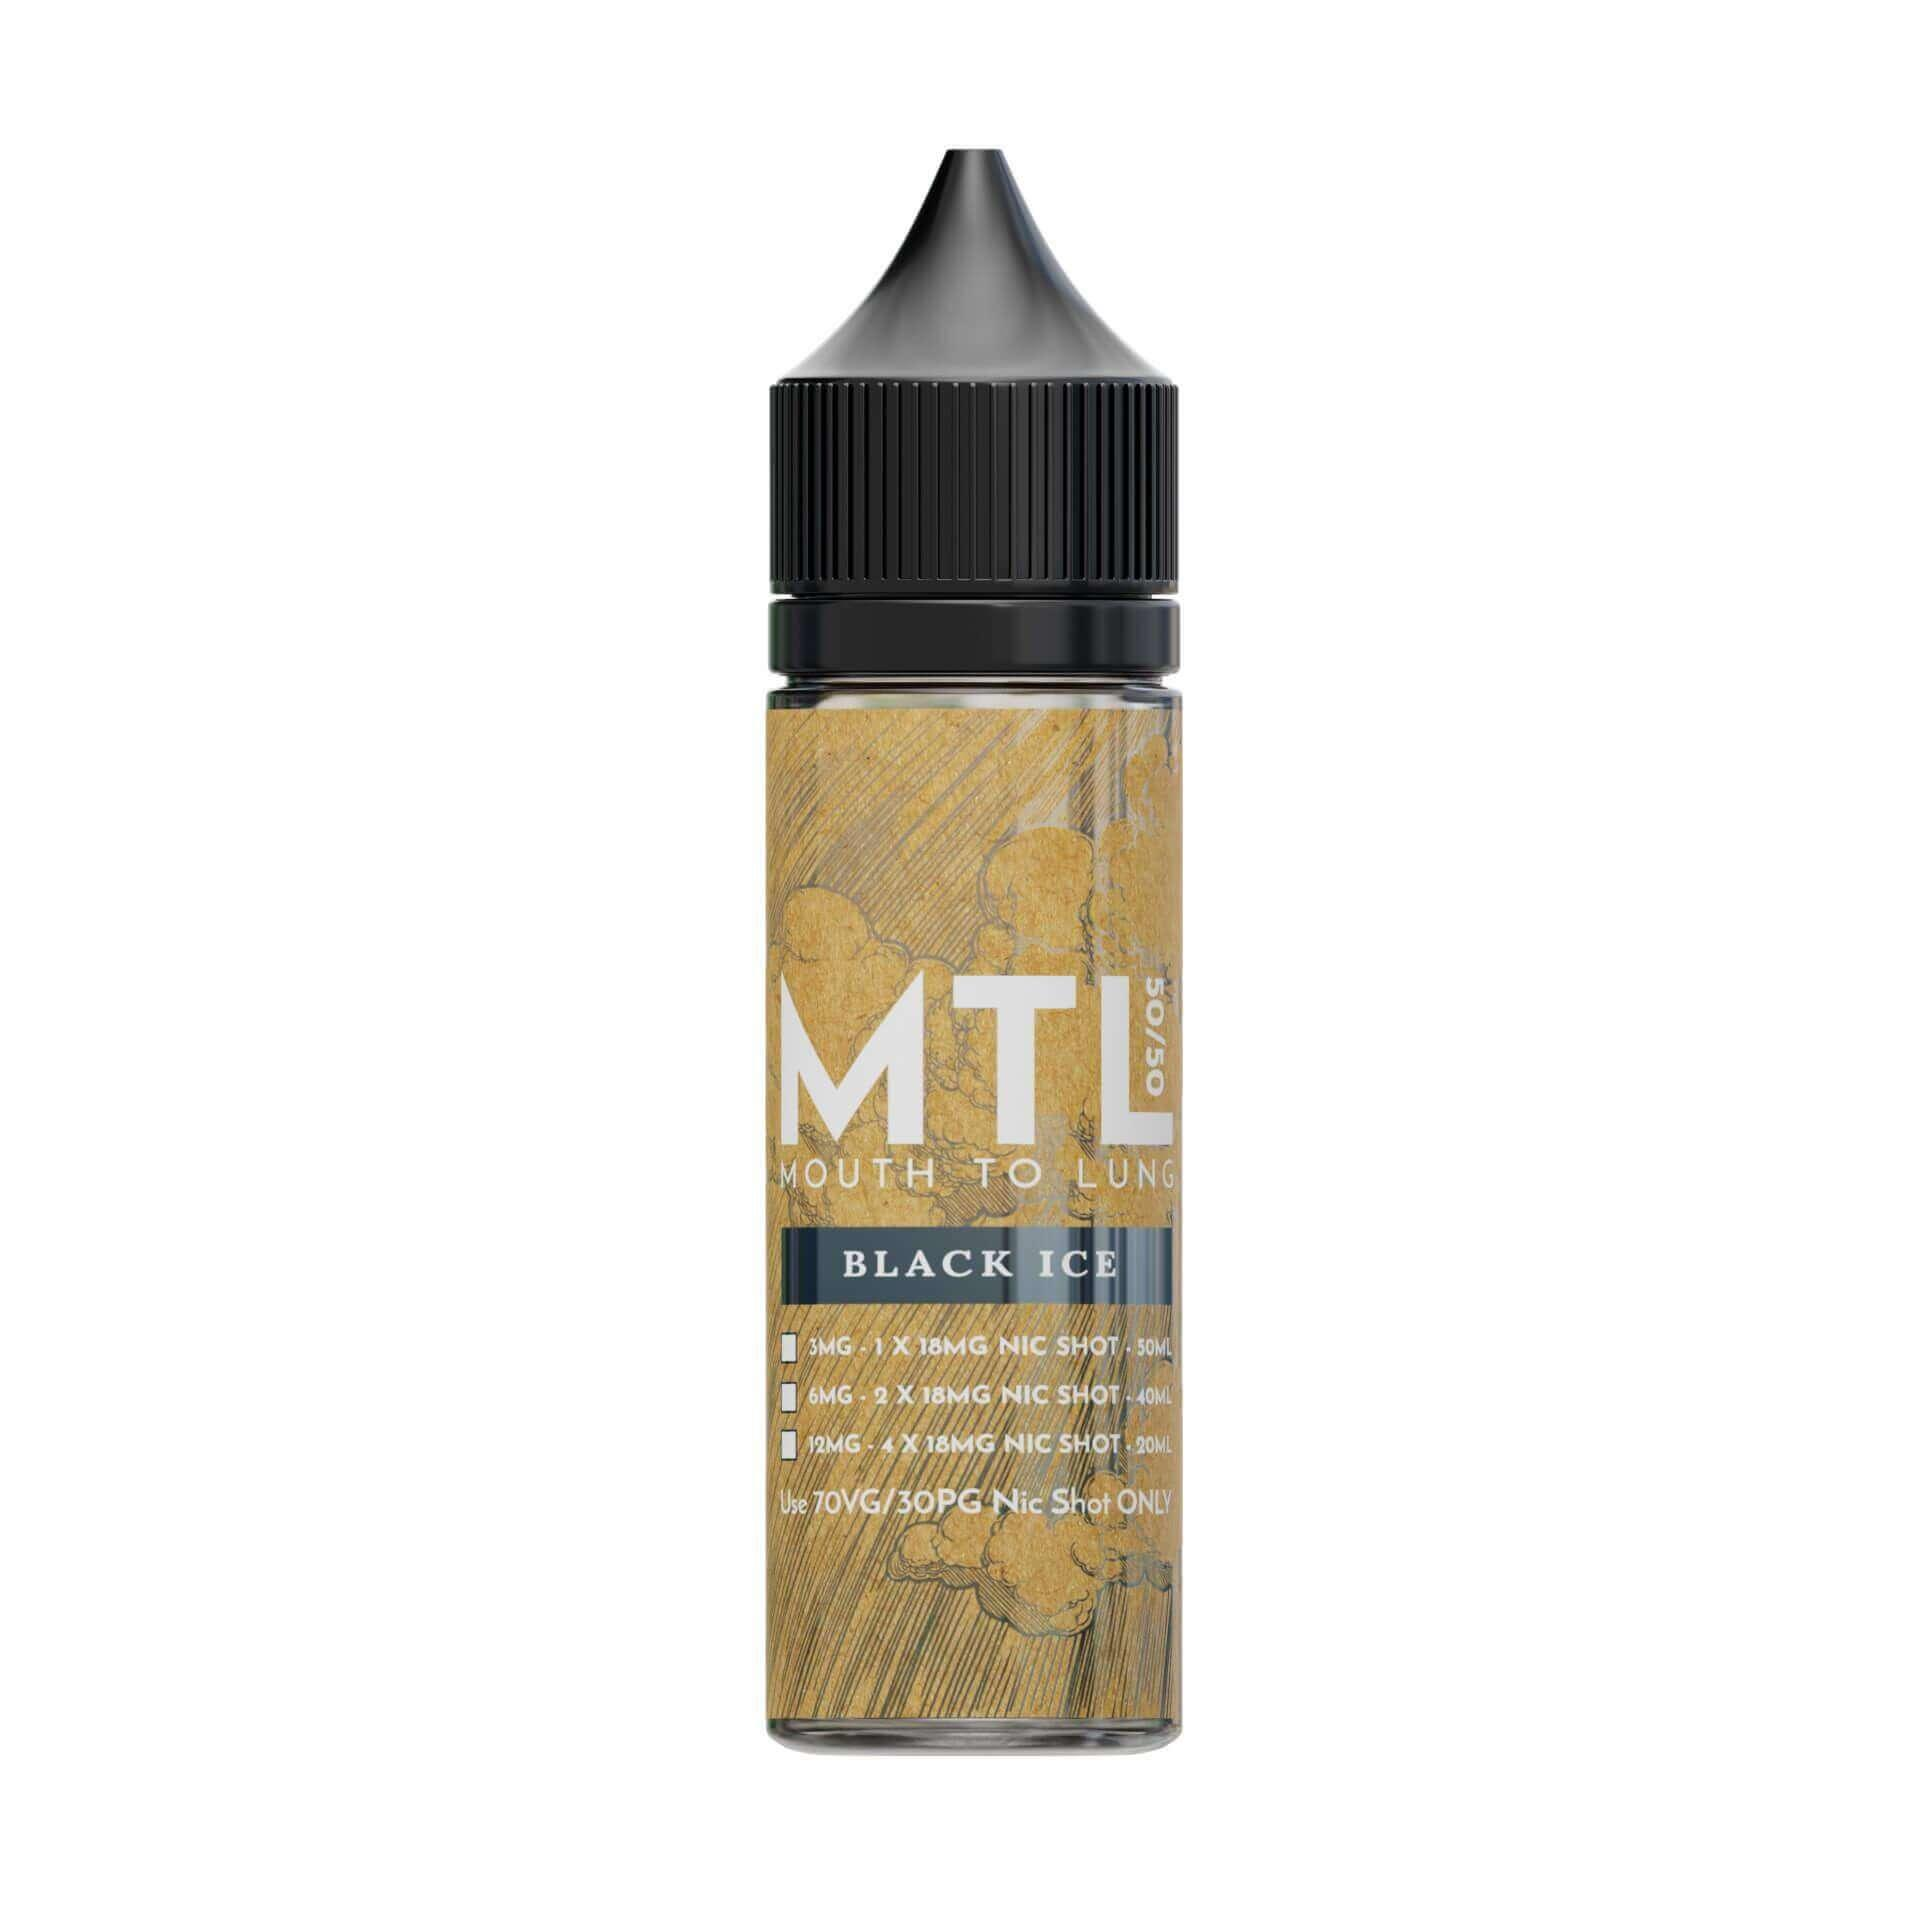 Black Ice MTL 0mg 50ml Shortfill